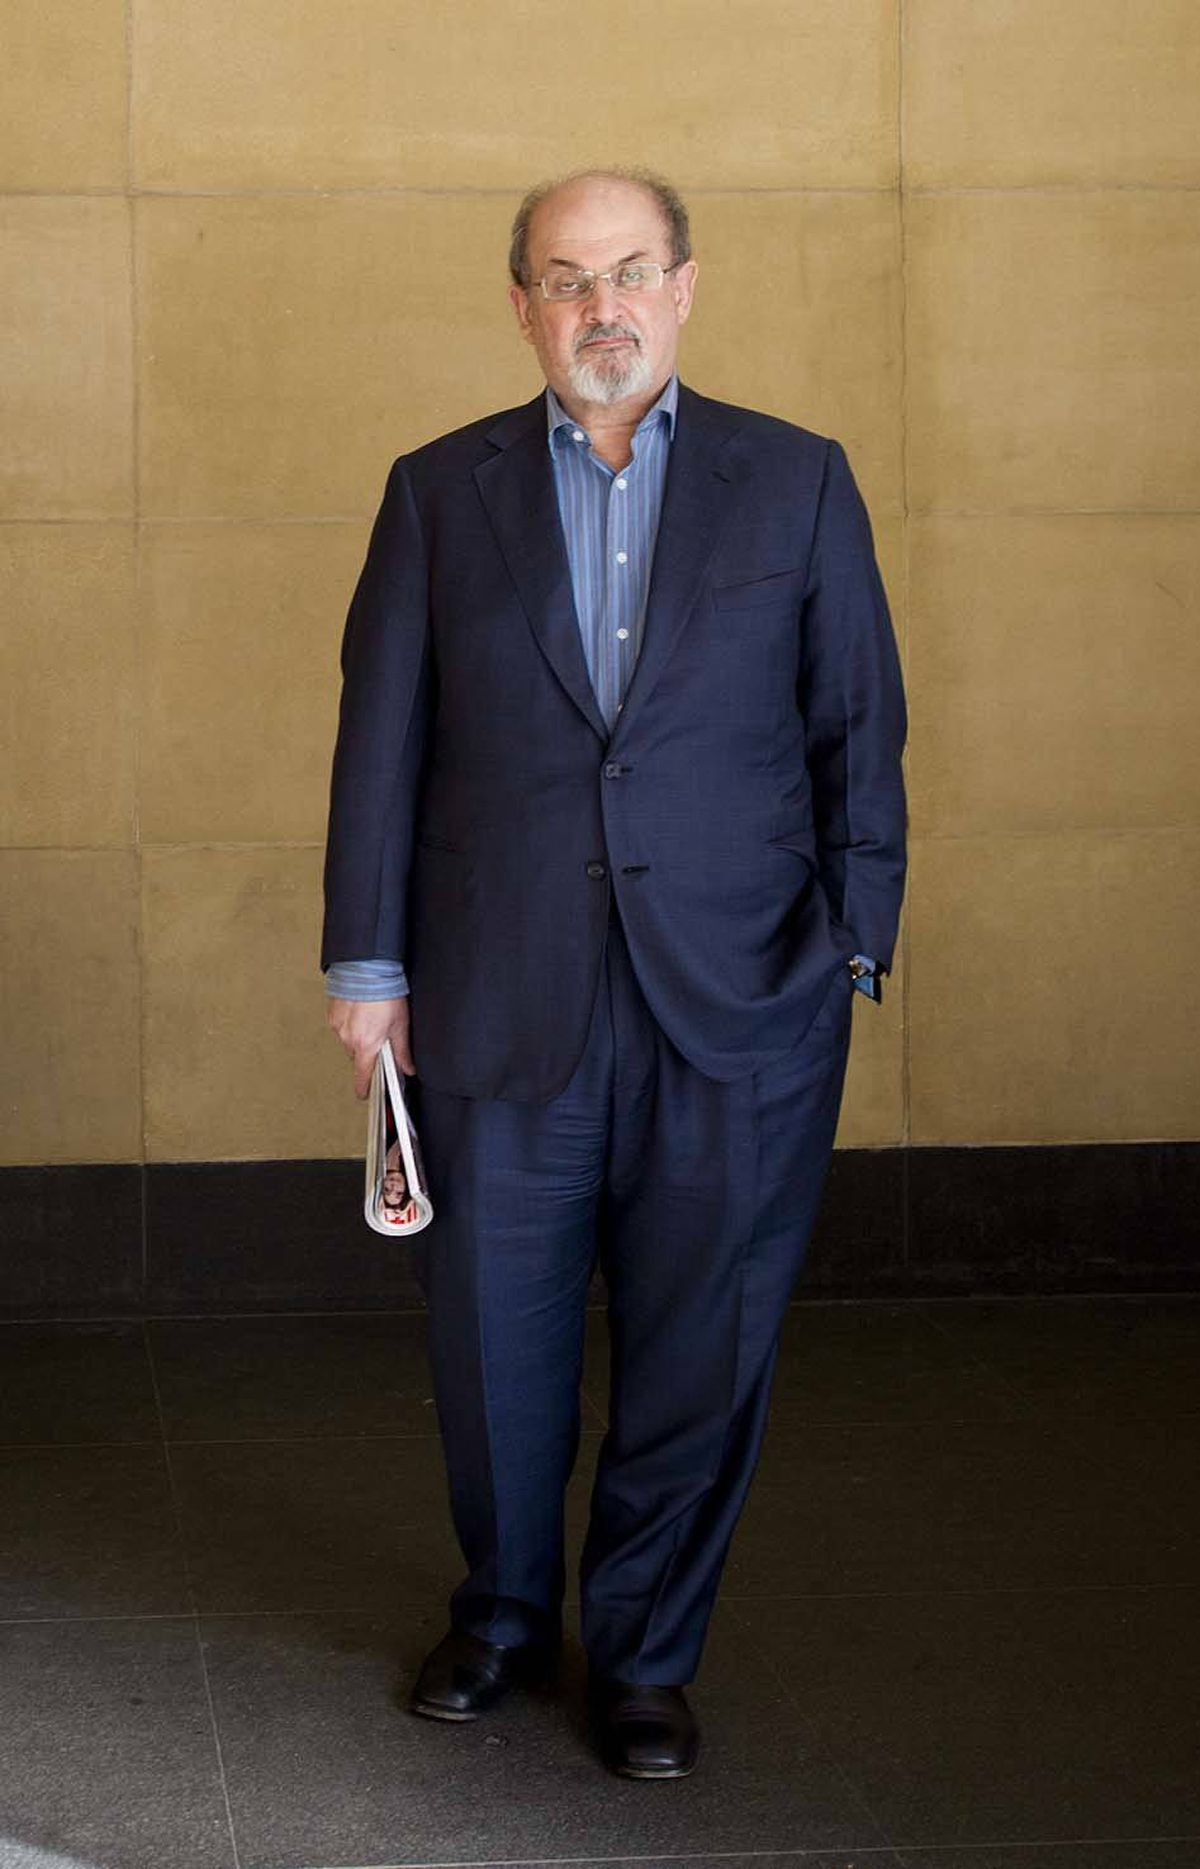 Author Salman Rushdie will appear in conversation with director Deepa Mehta at TIFF 2011.